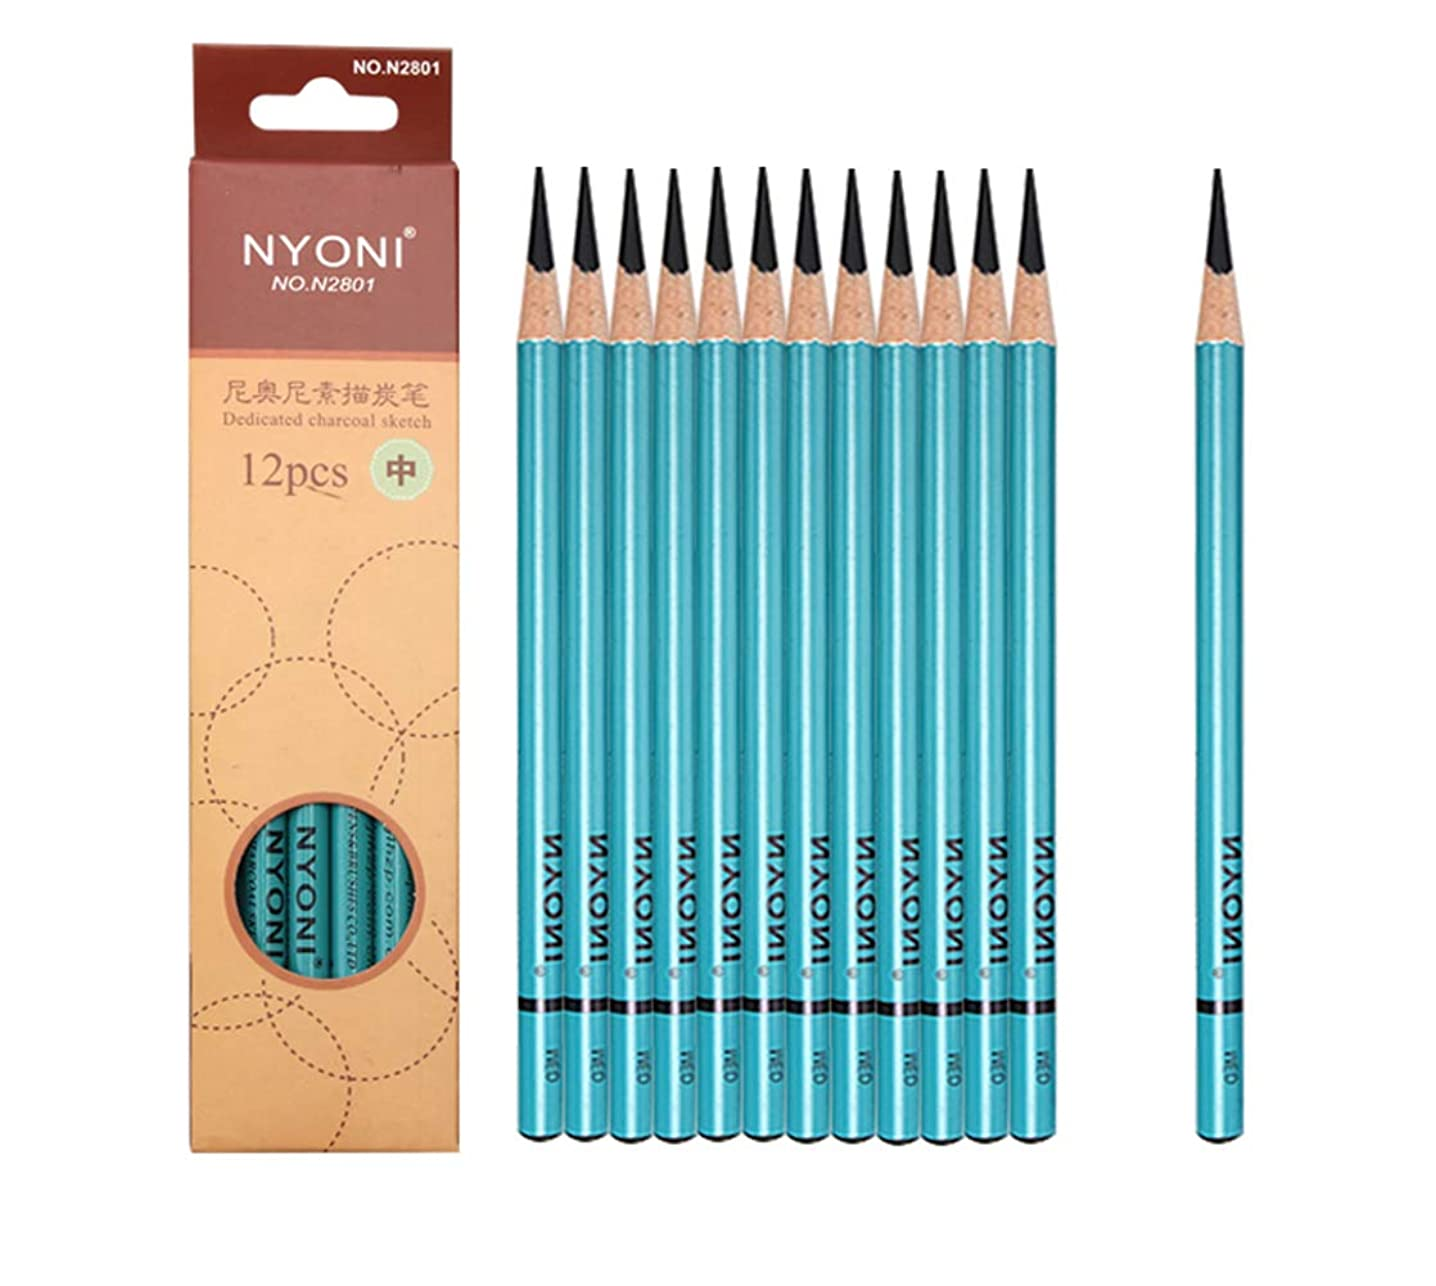 Professional Sketching Pencils Set,Sketch & Drawing Pencils Art Tool Set 12B 10B 8B 7B 6B 5B 4B 3B 2B B HB 2H 4H 6H Art Supplies (12pcs-Medium-Black)